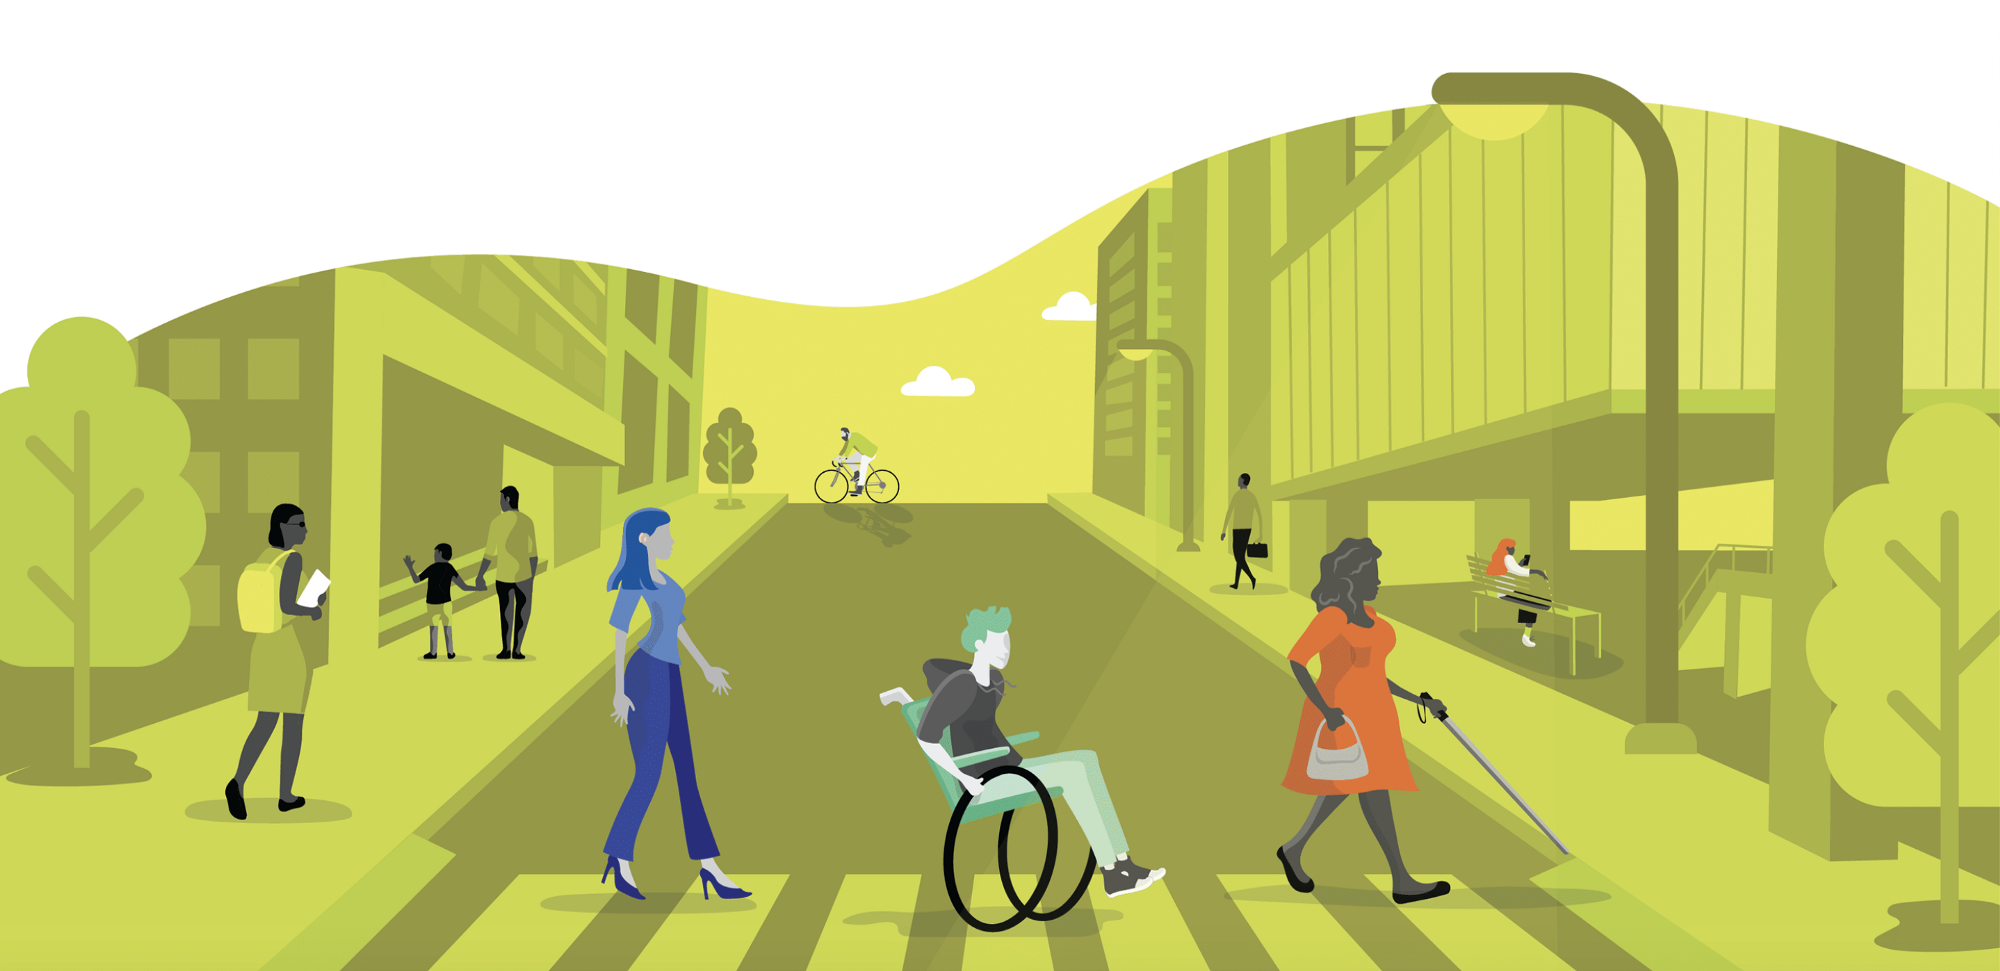 An illustration of people with different mobility abilities navigating in the city